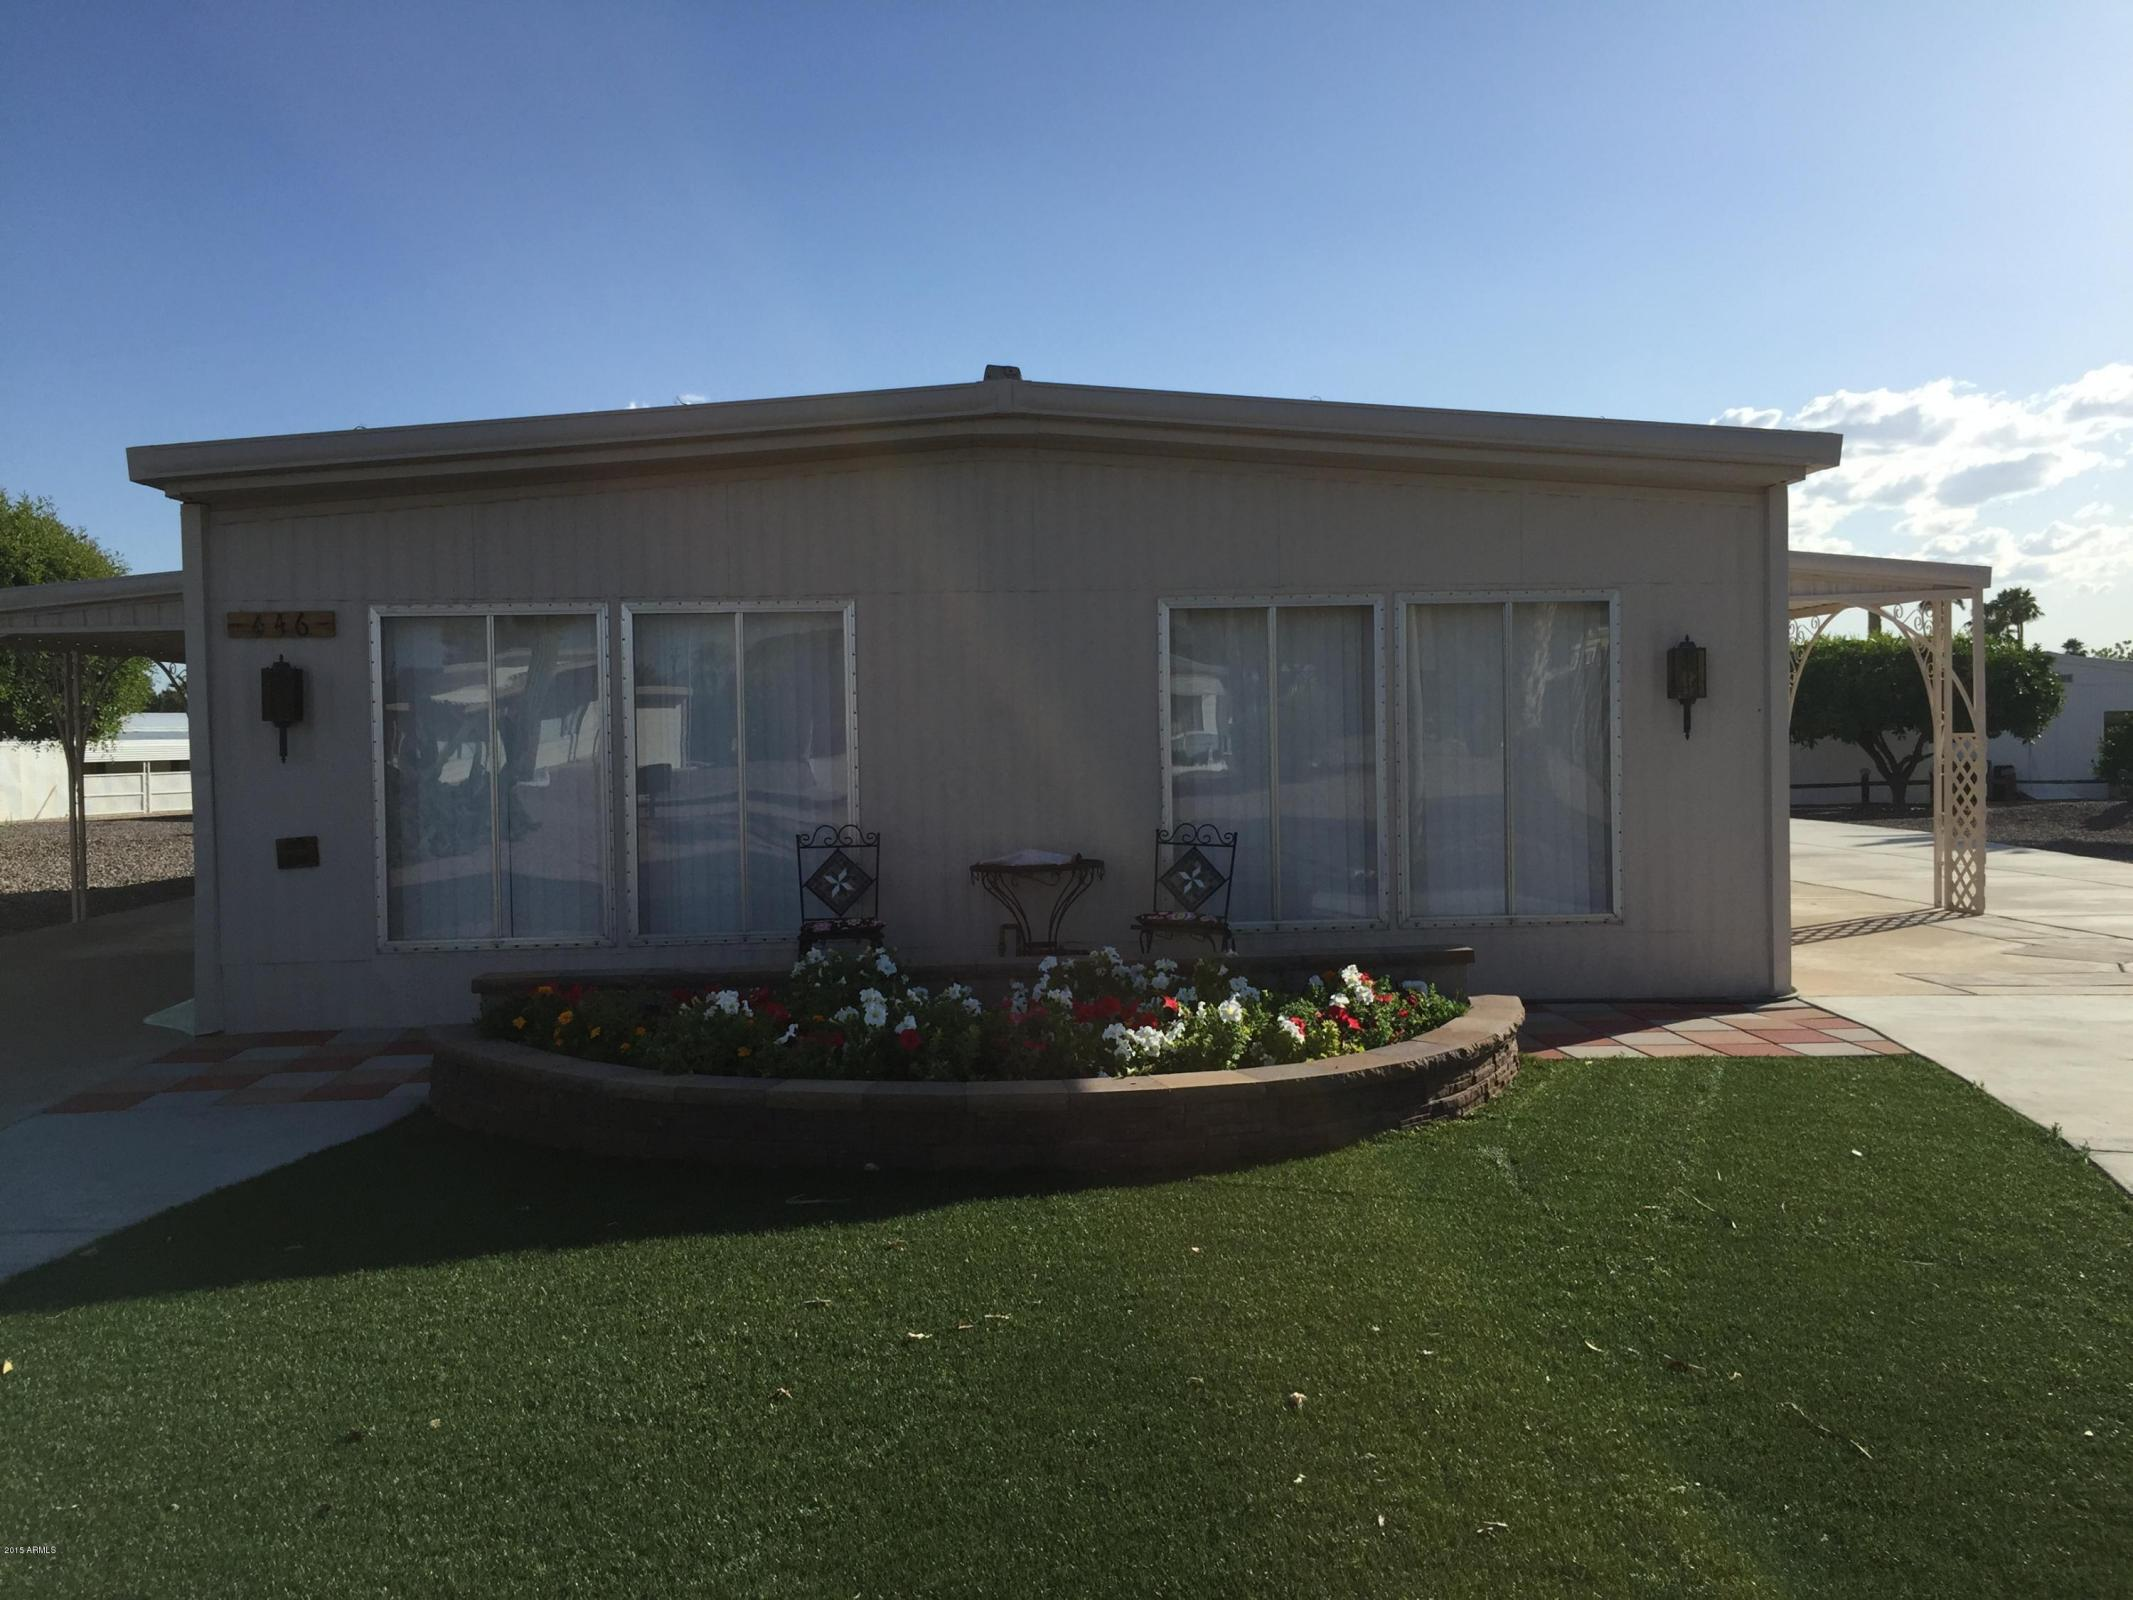 446 S. 82nd Place, Mesa, Arizona 85208